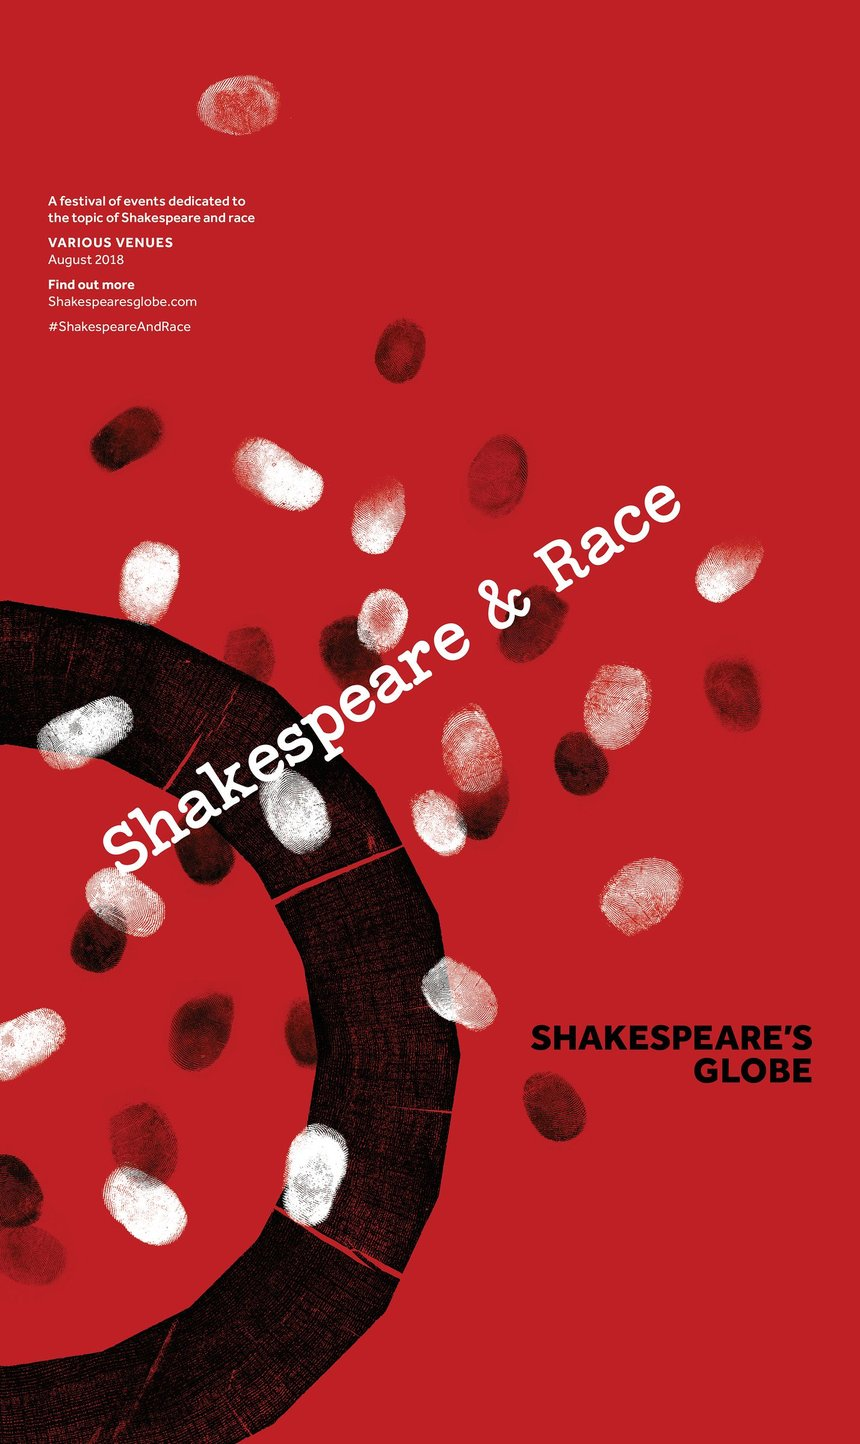 Shakespeare's Globe: The Old and New Collide